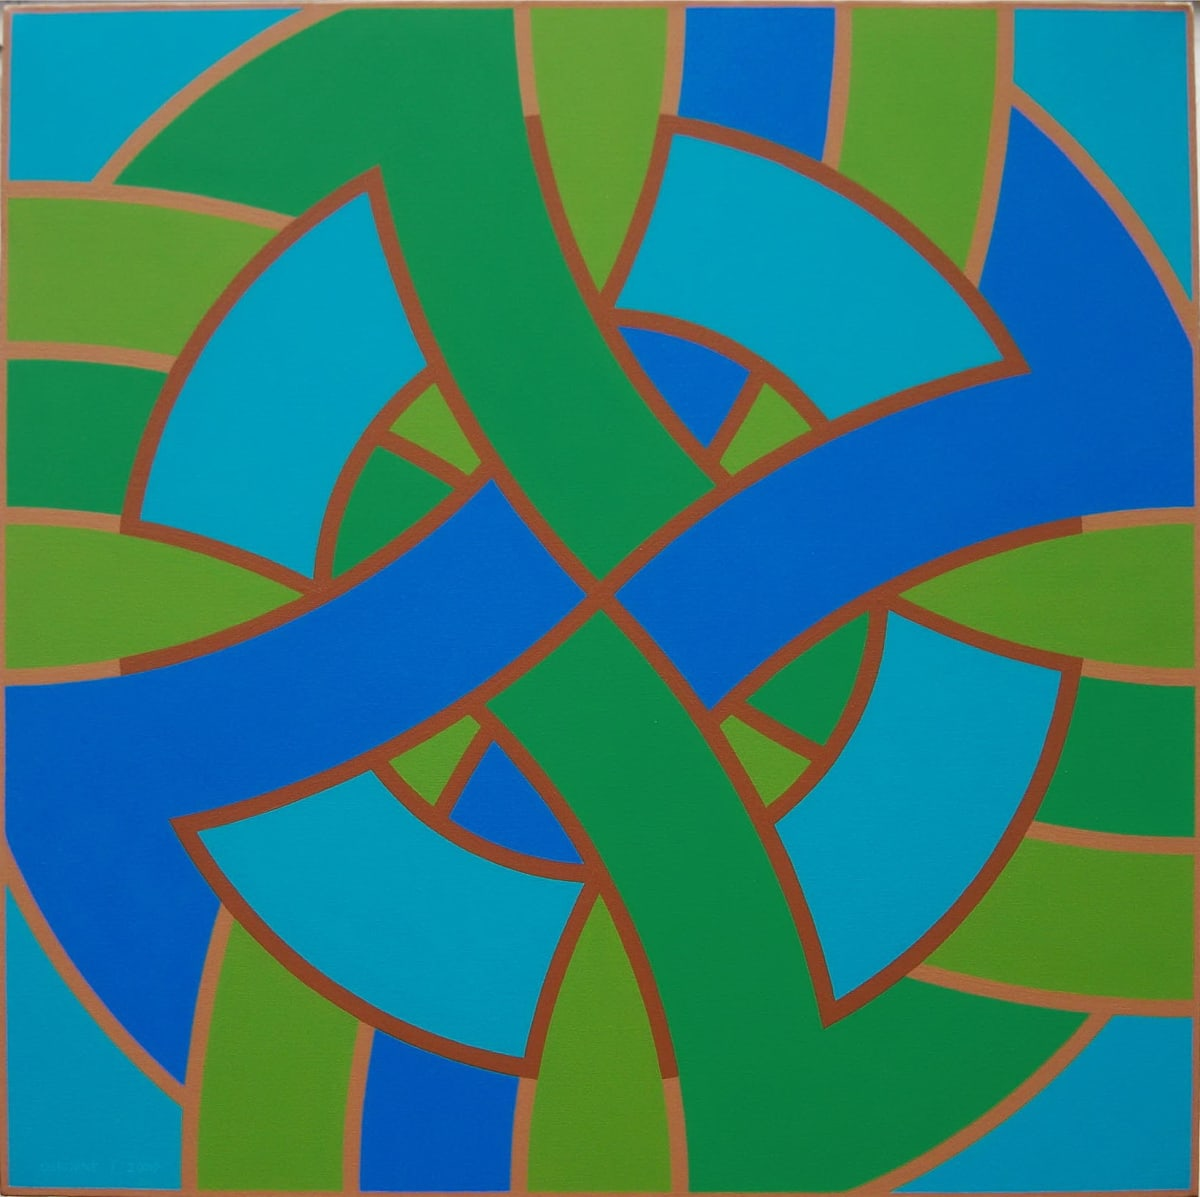 ROY OSBORNE Circular Forms (Compass series), 2009 oil on canvas 76 x 76 cm 30 x 30 in signed and dated